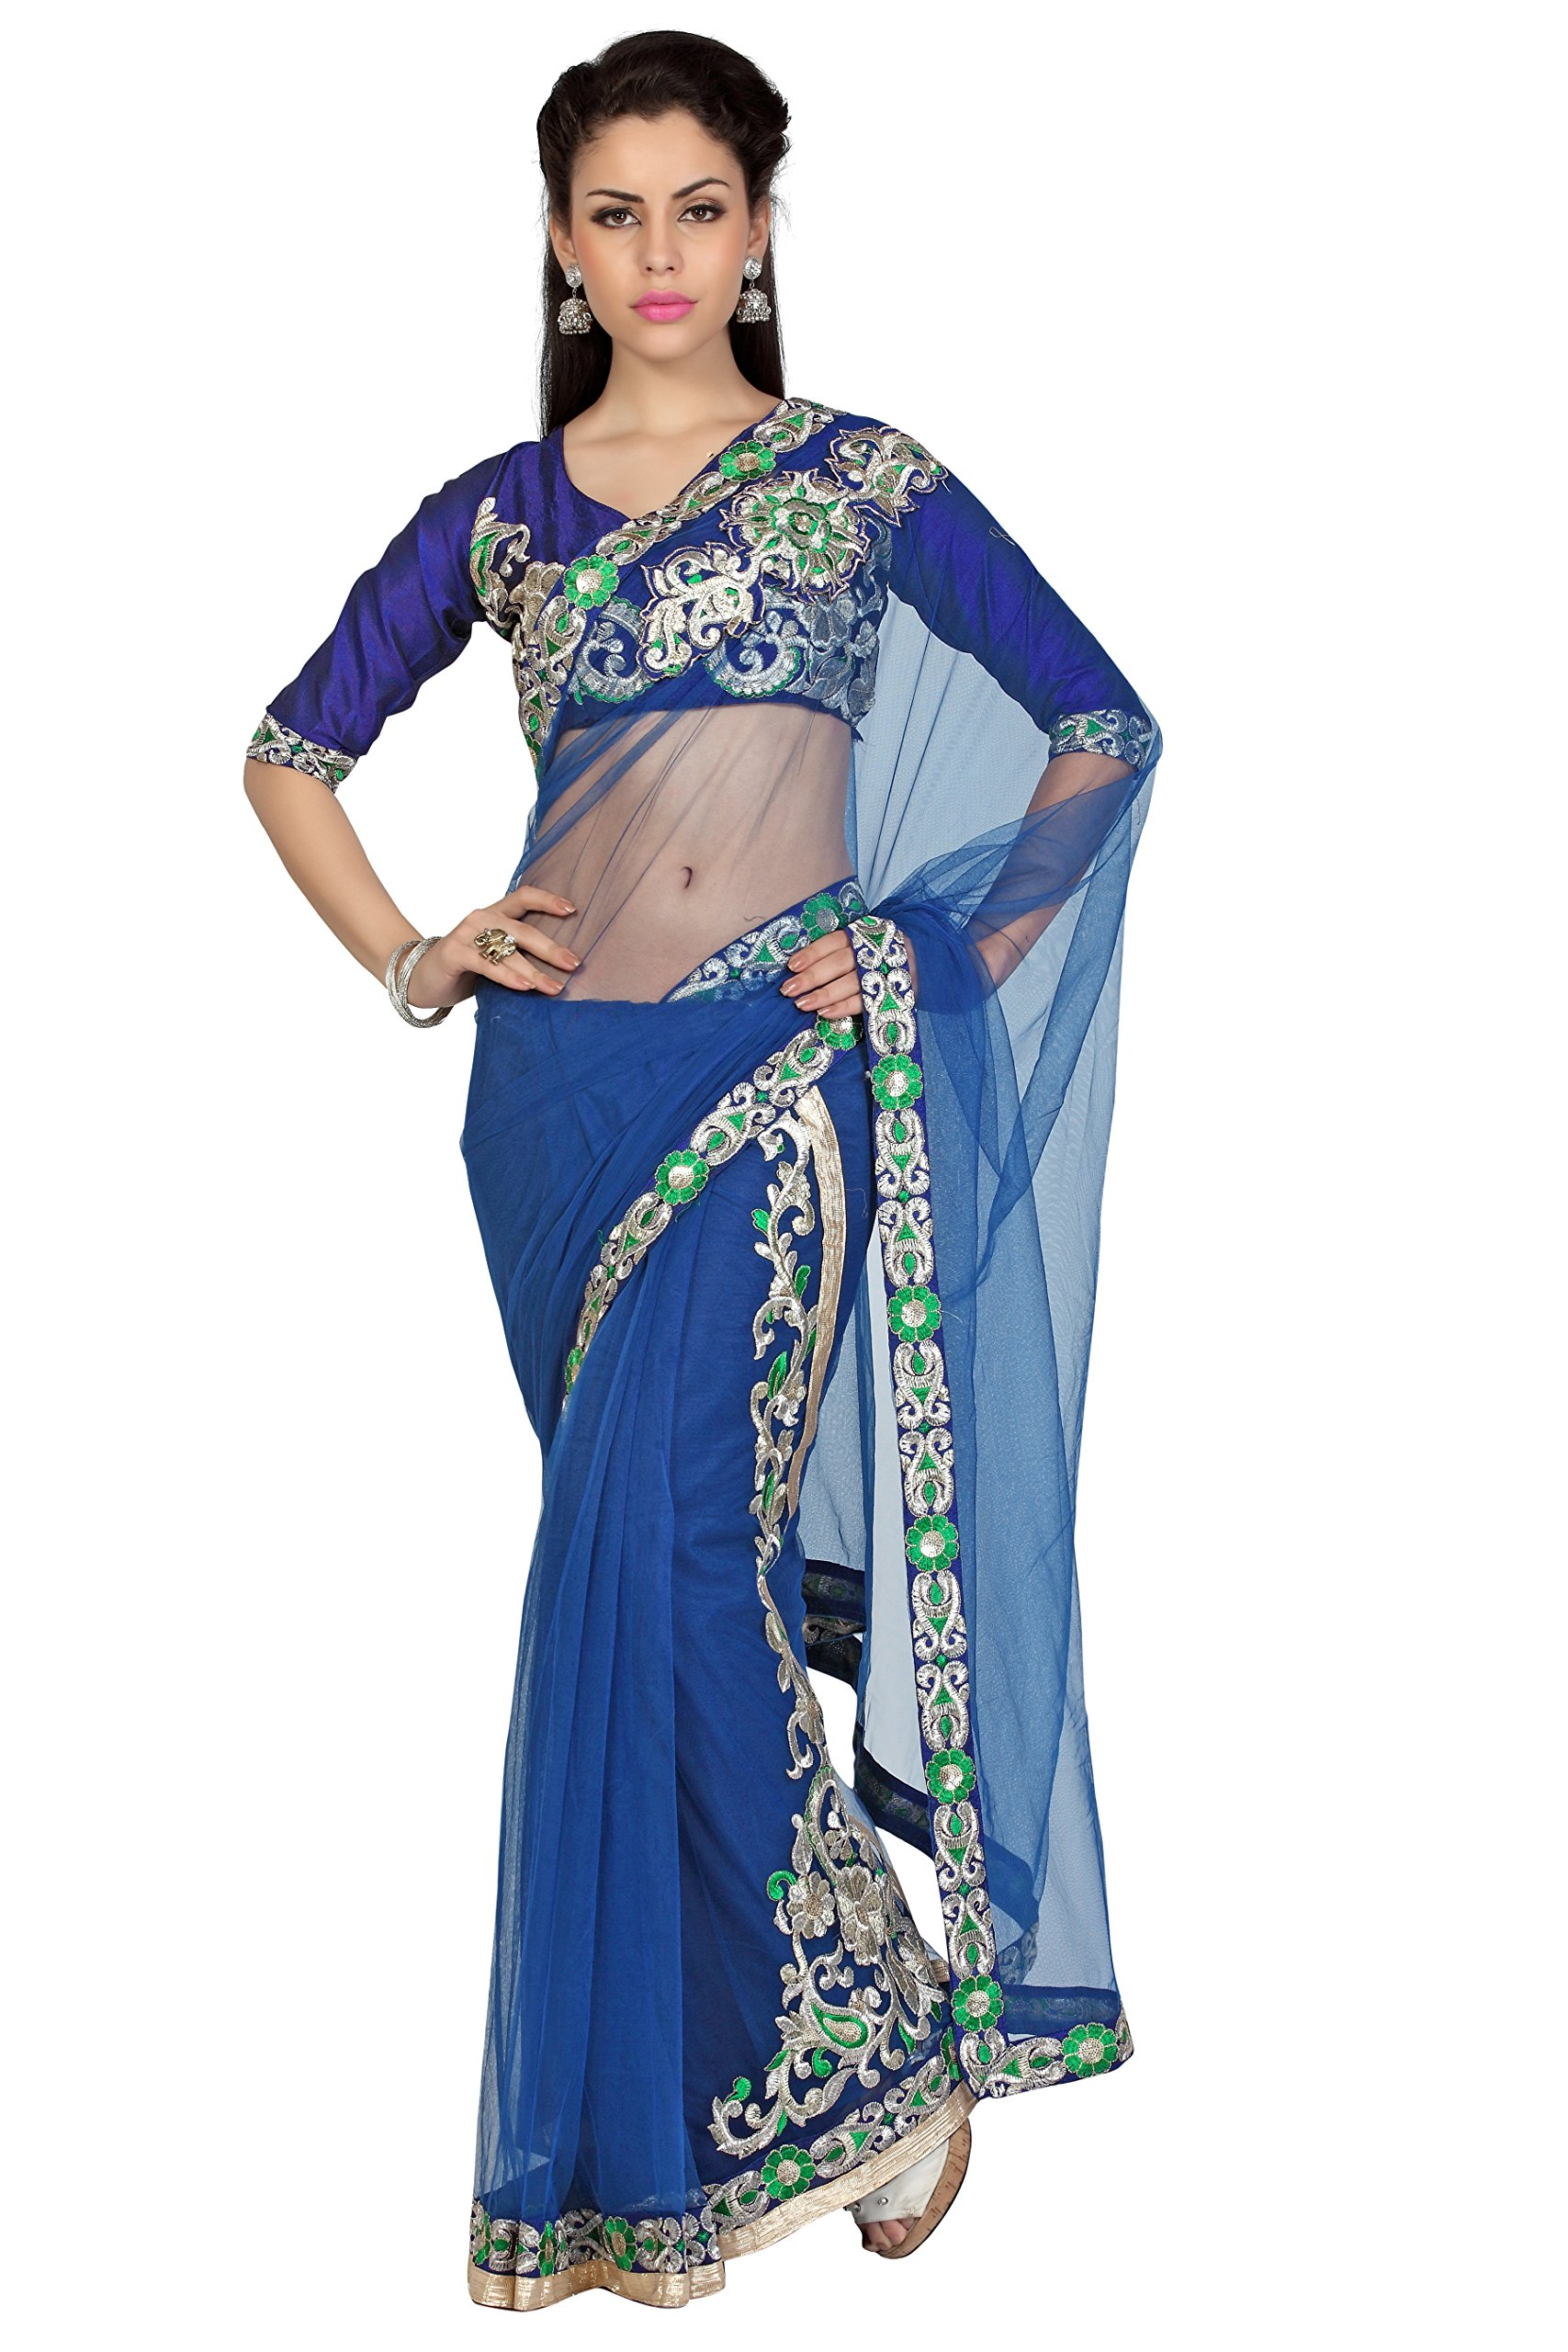 Bollywood Women's Indian Ethnic Designer Navy Blue Color Net Party Wedding Sari With Saree Blouse Unstitched